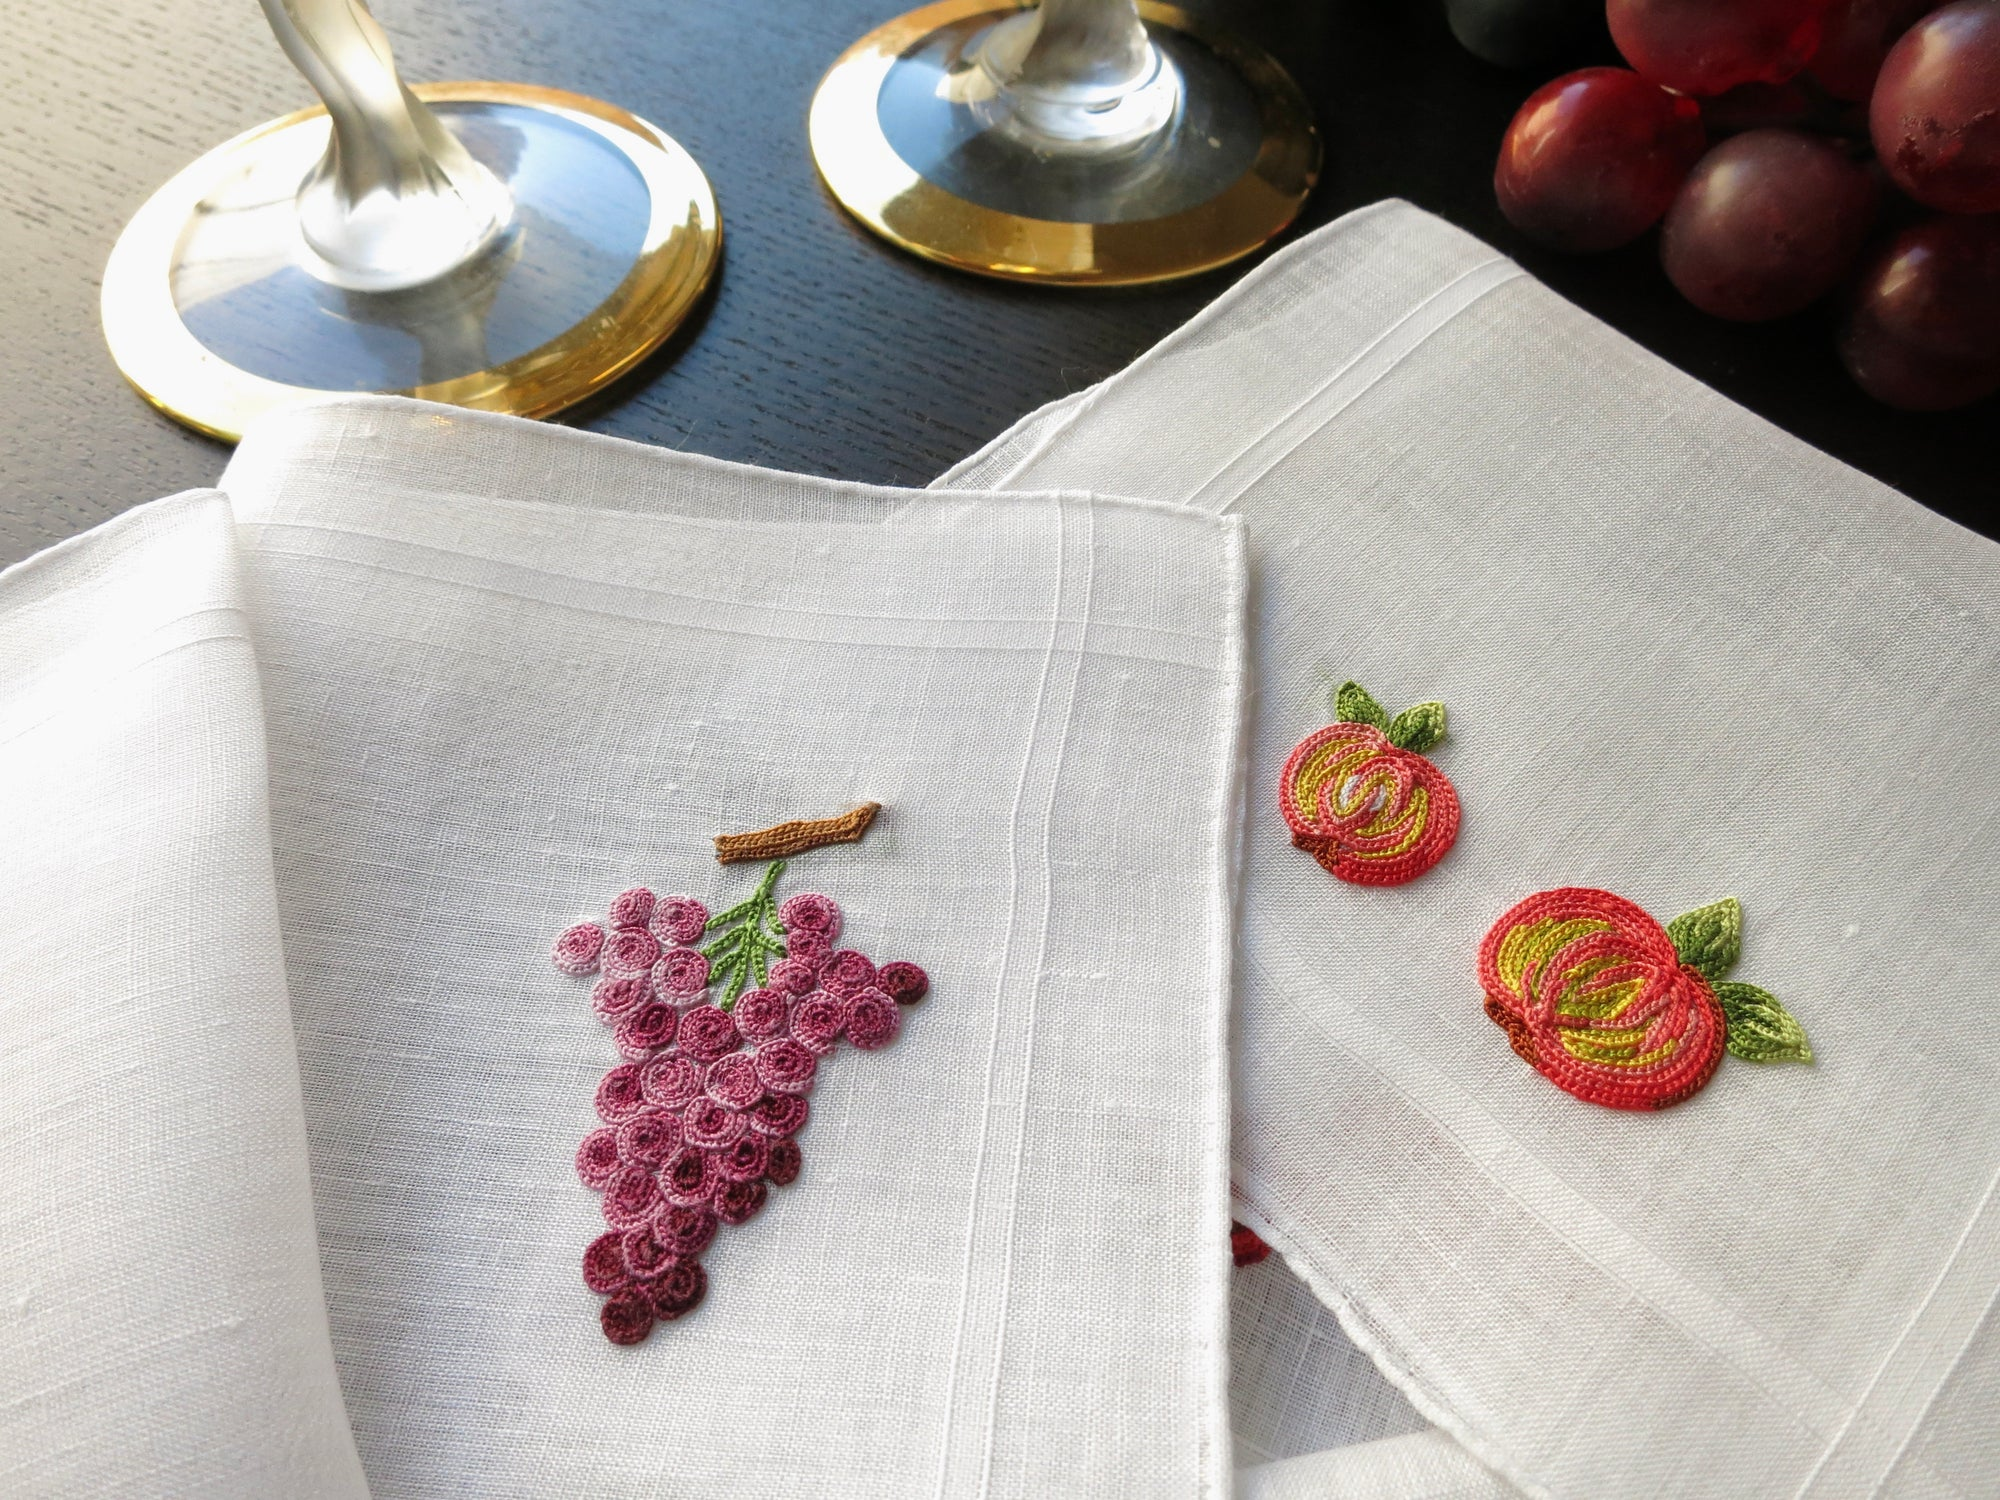 Mixed Fruits #2 Vintage French Beauvais Embroidered Cocktail Napkins - Set of 8